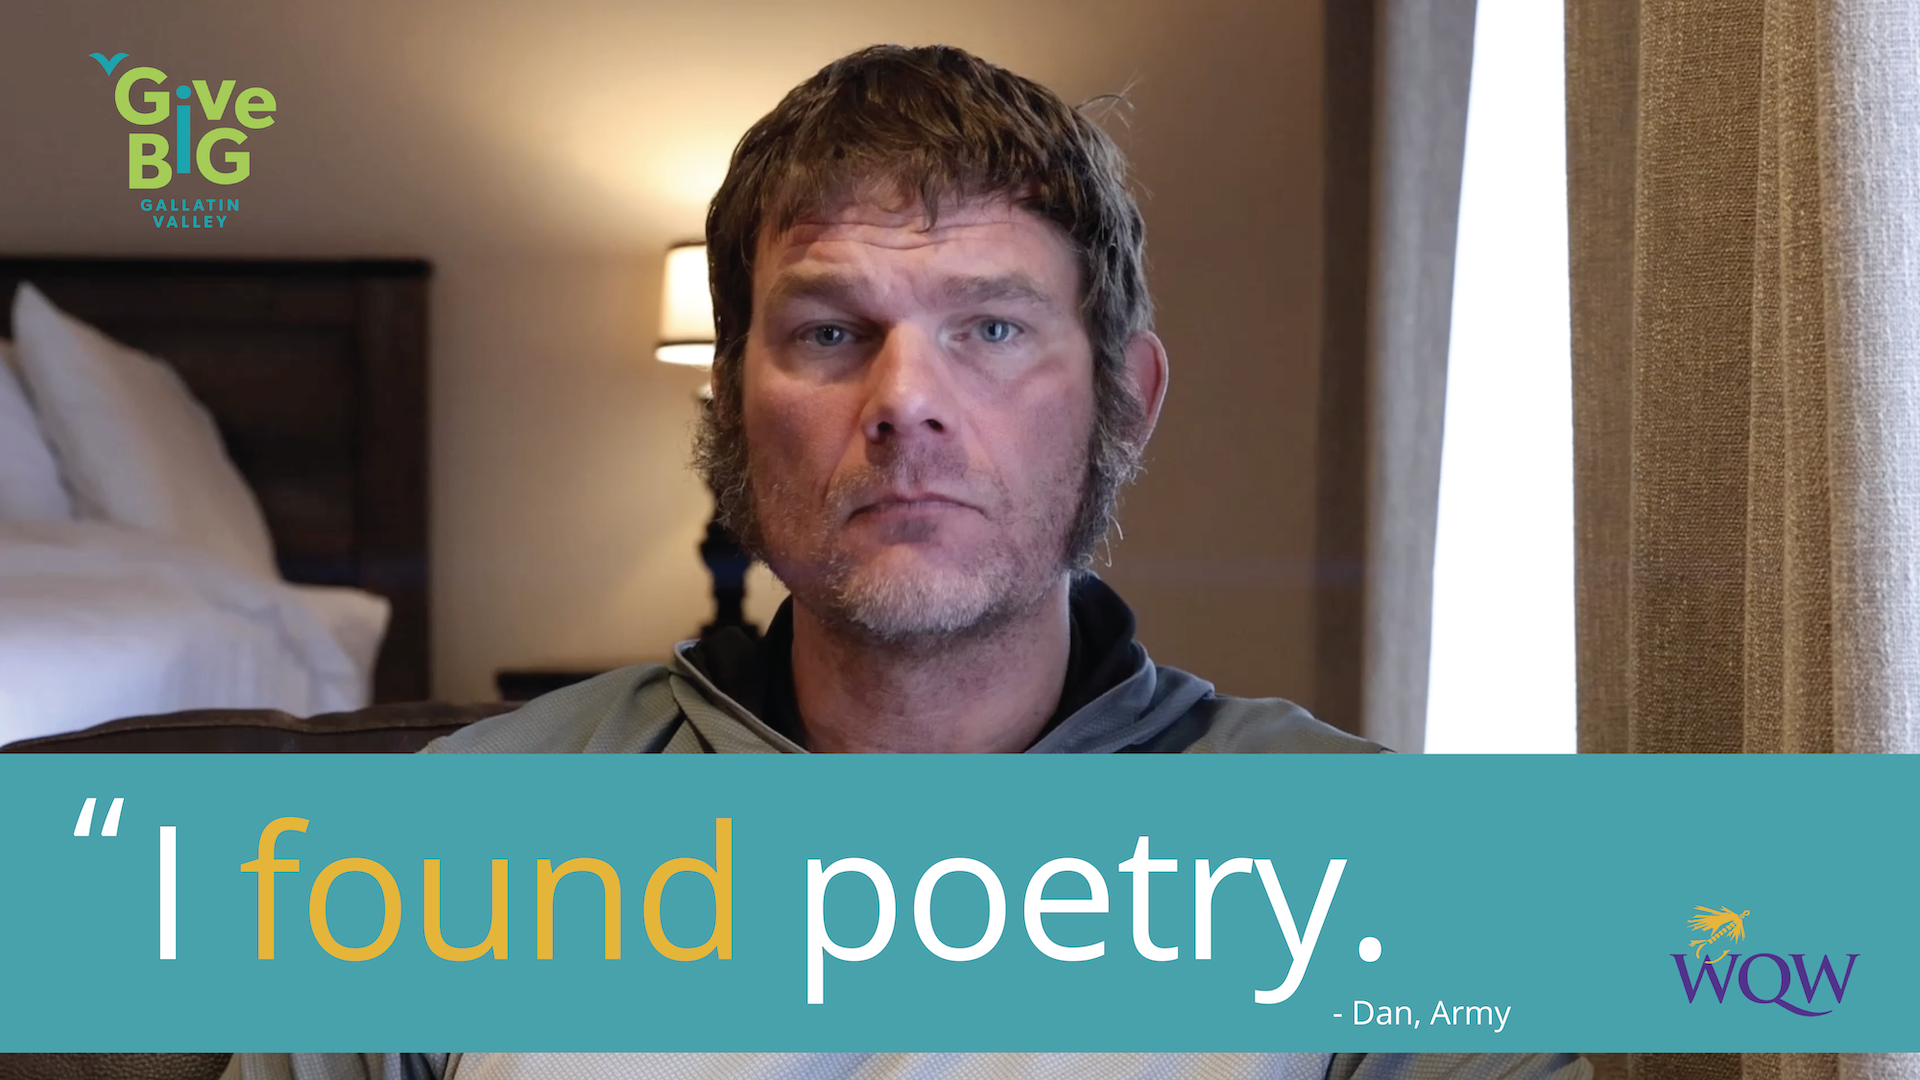 Profiles in Service – Meet Dan, A Warrior Who Found Poetry